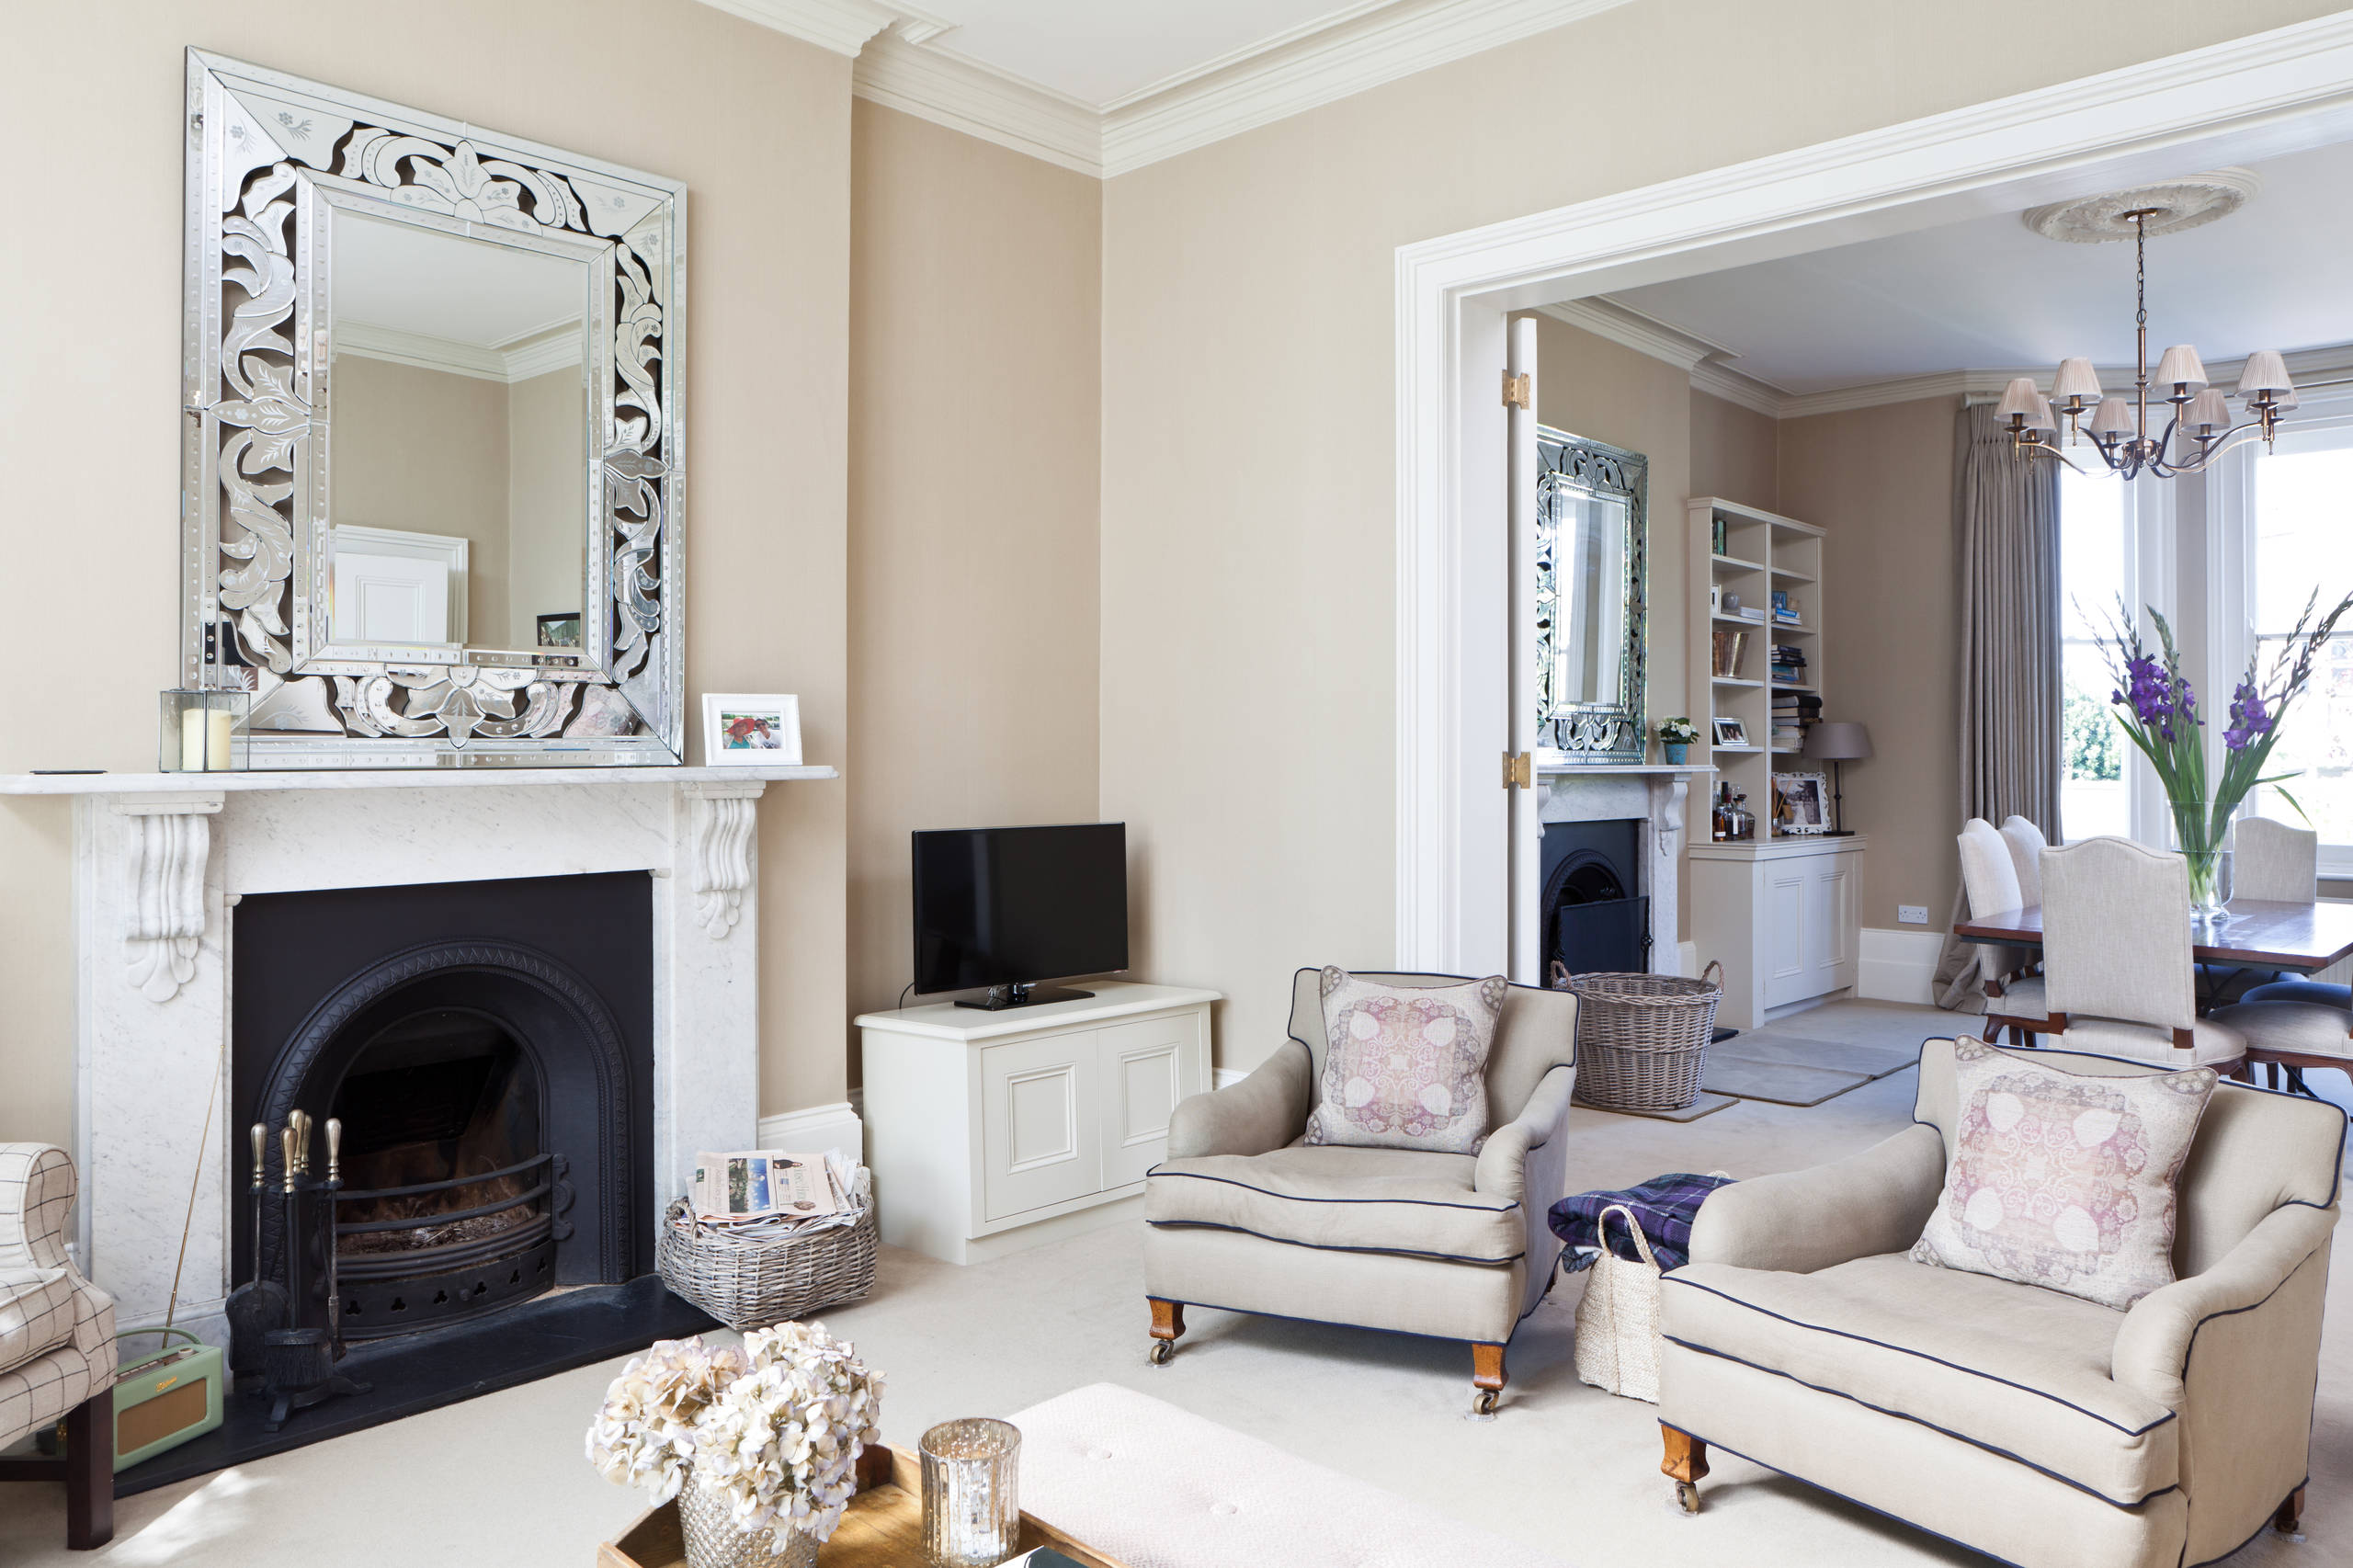 75 Beautiful Victorian Open Concept Living Room Pictures Ideas March 2021 Houzz